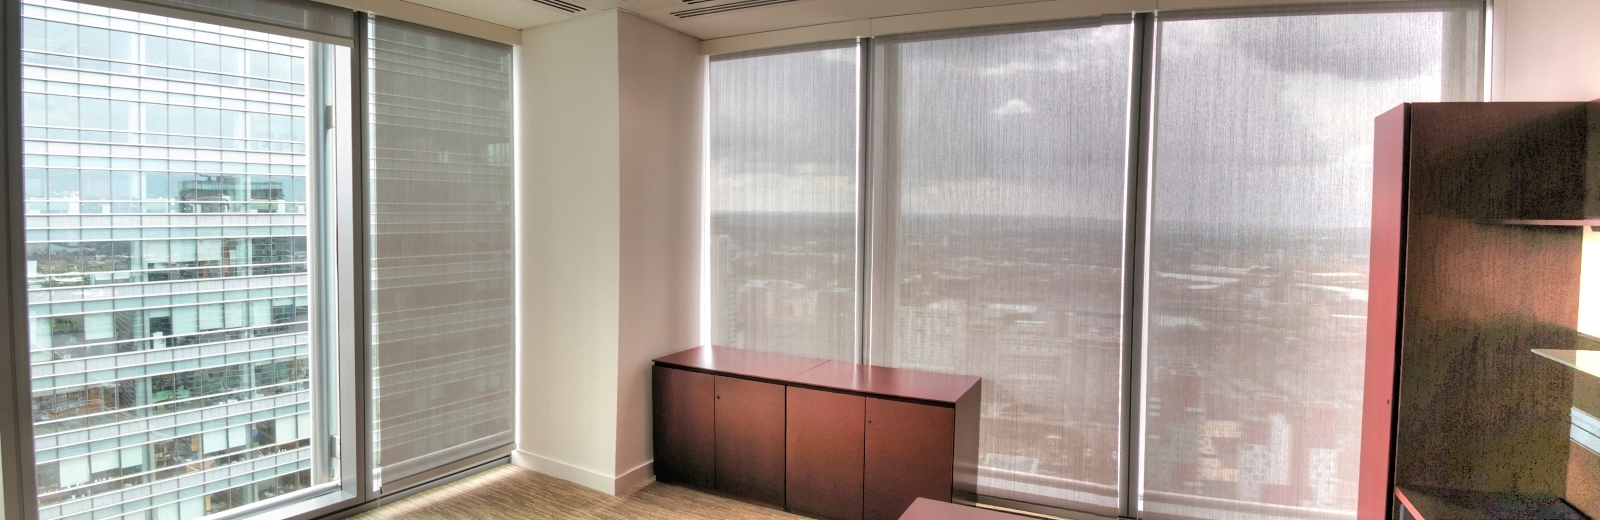 3000 Series Roller Blinds